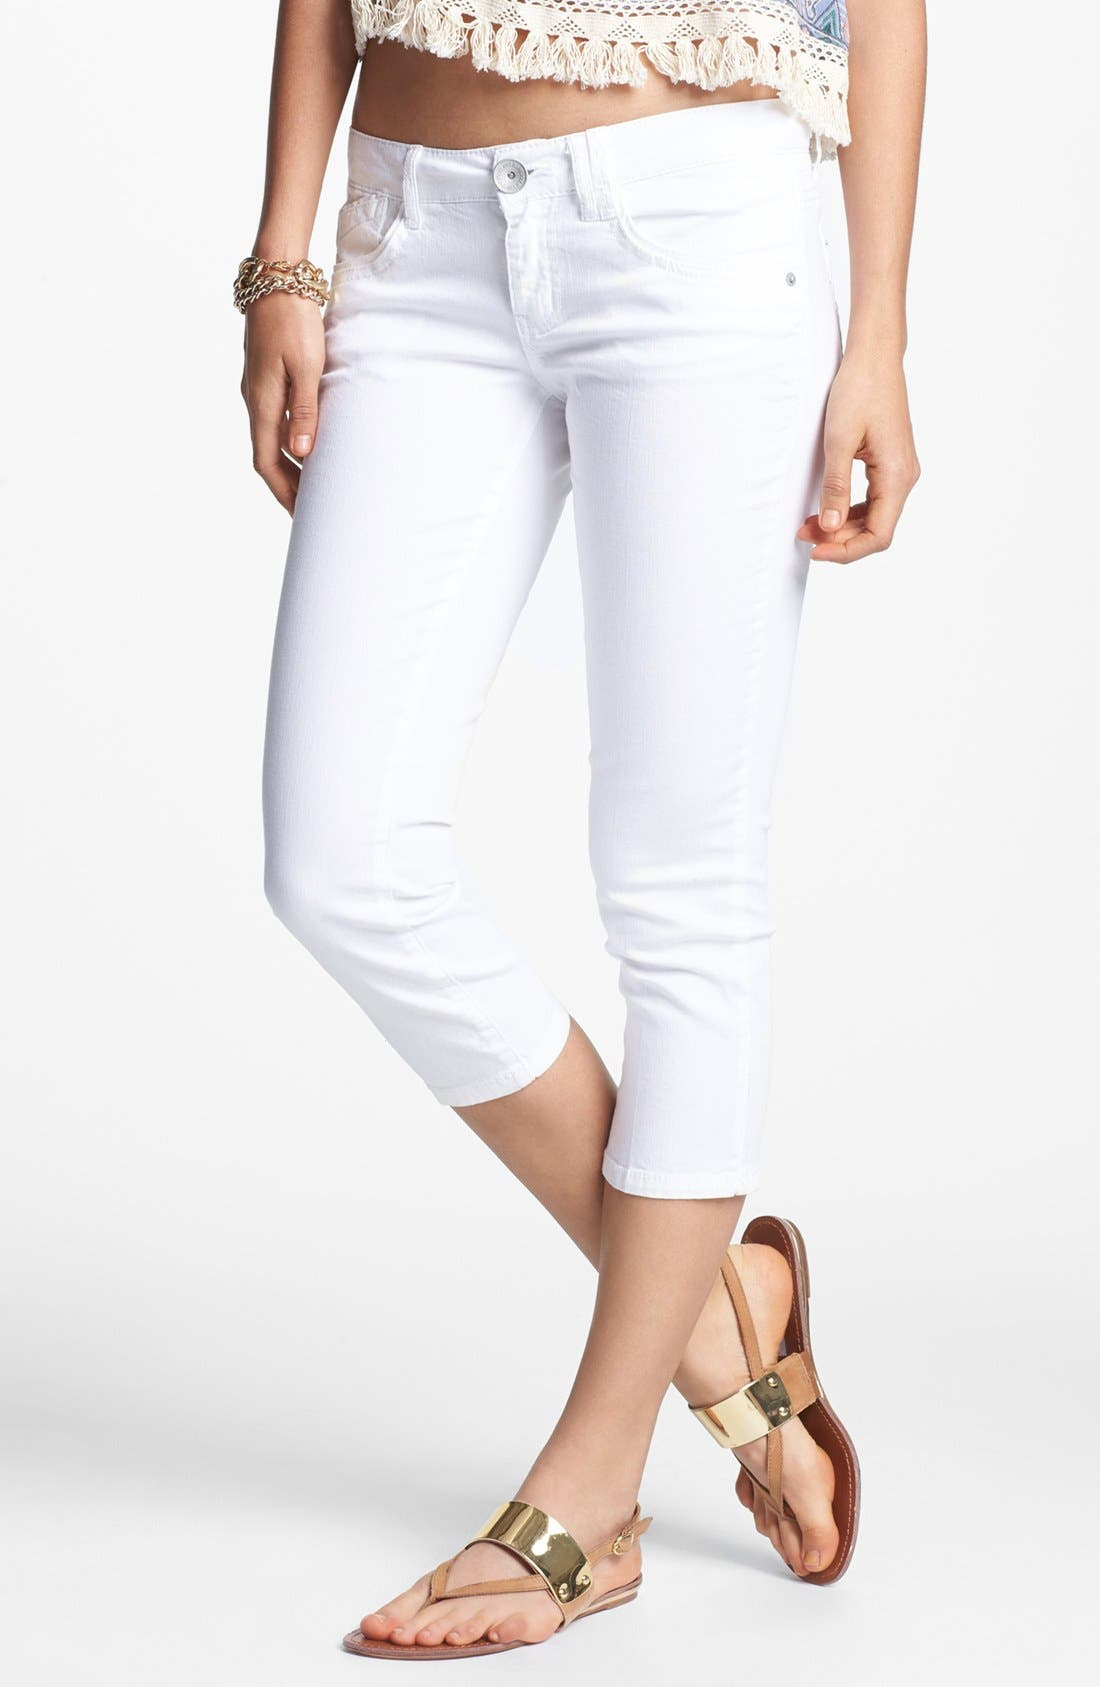 Main Image - Jolt Crop Skinny Jeans (White) (Juniors)